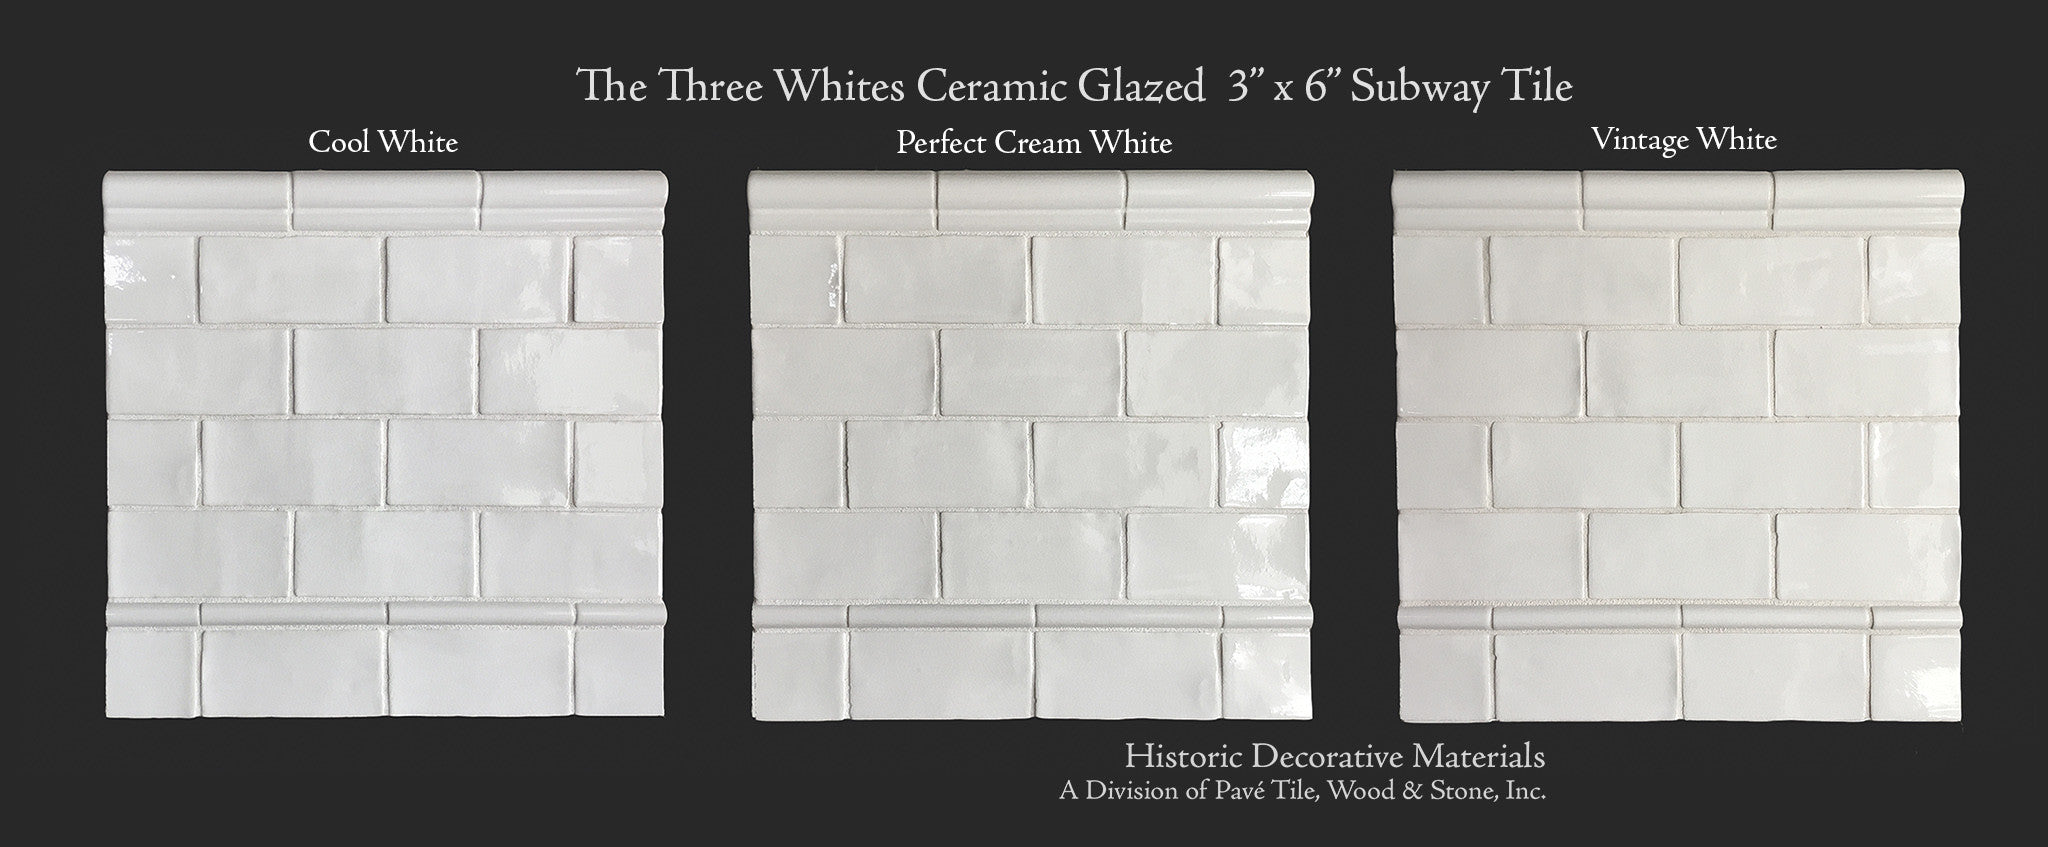 Ceramic glazed 3 x 6 subway tiles for kitchen back splash and the three whites glazed ceramic subway tile is that arch marrying old world materials with traditional dailygadgetfo Choice Image